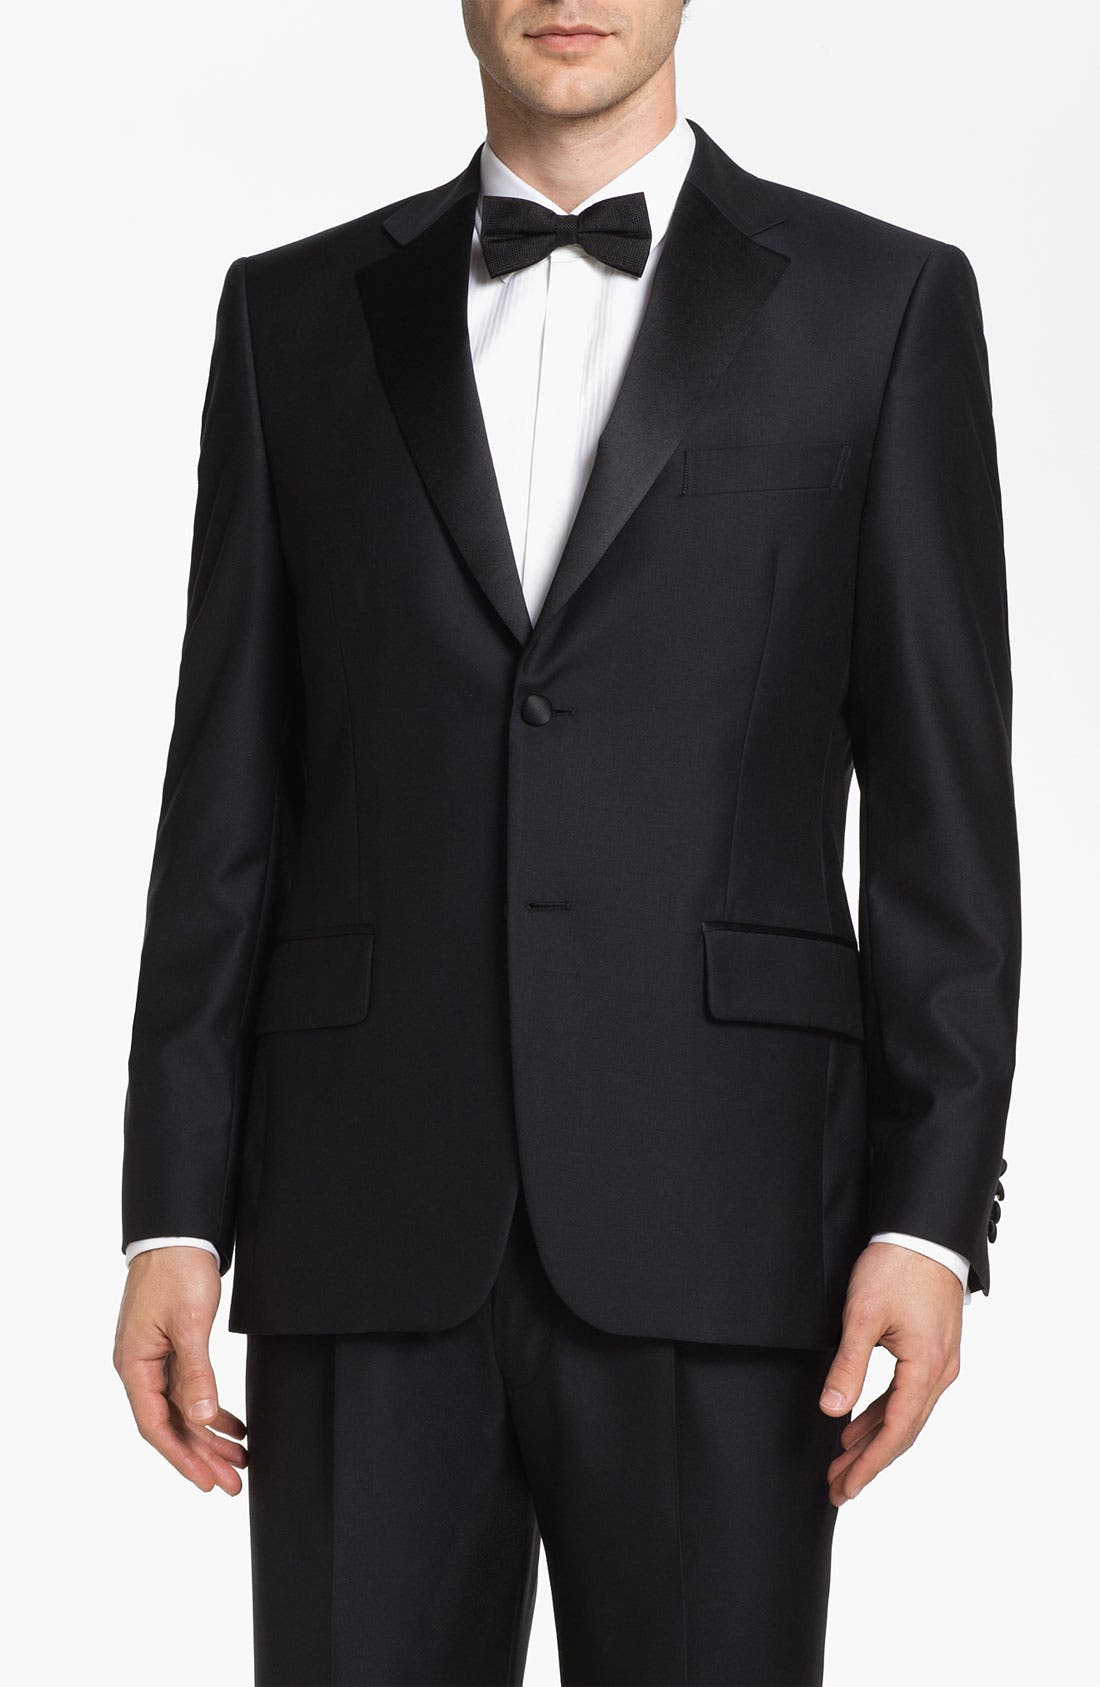 Alternate Image 1 Selected - John W. Nordstrom® Signature Wool Dinner Jacket